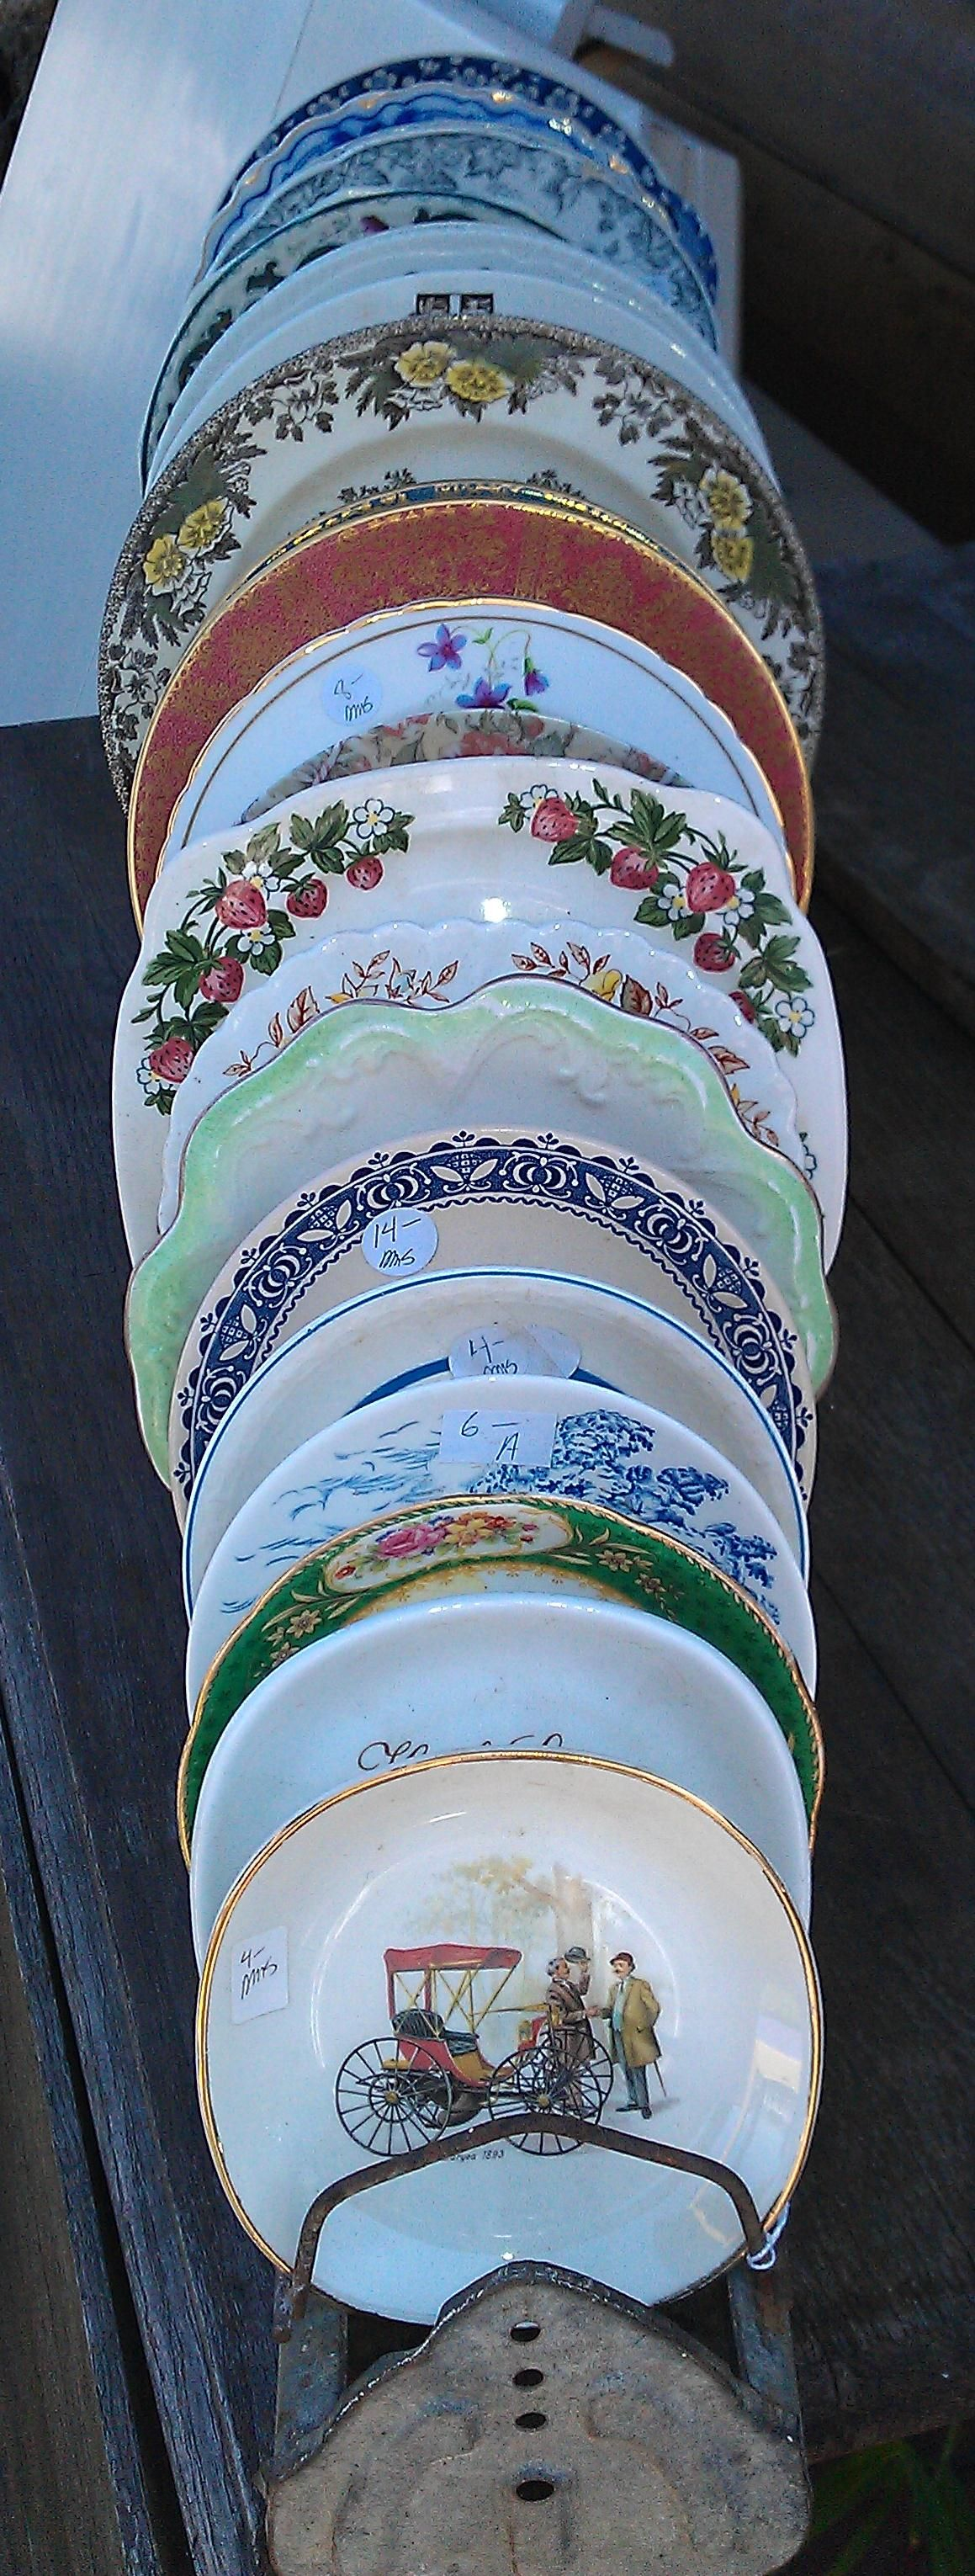 vintage china plates displayed in an antique chicken